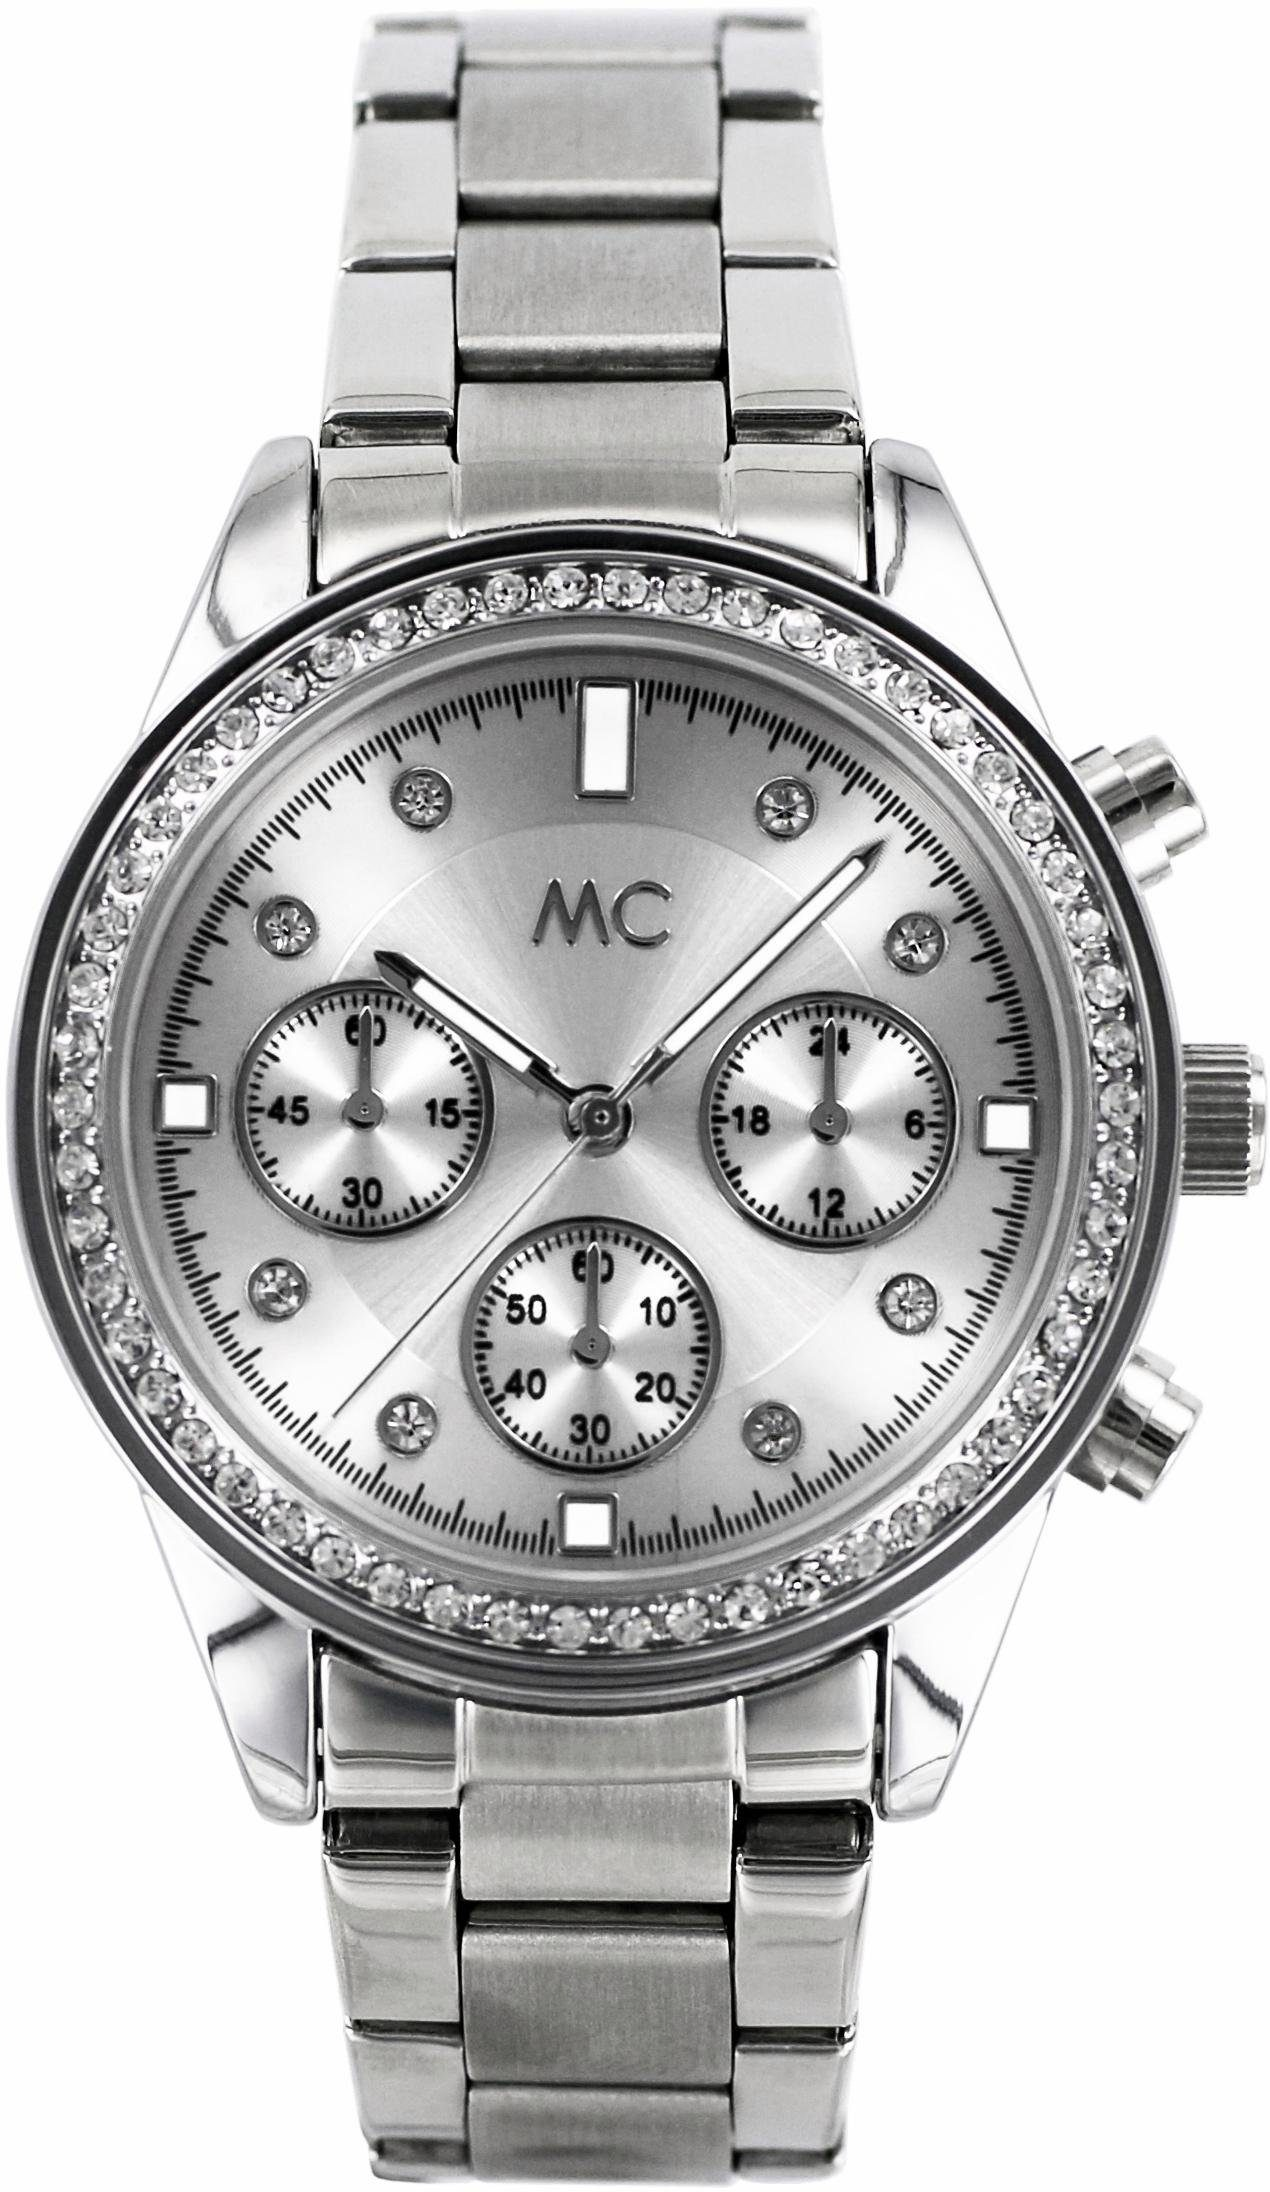 MC Quarzuhr »51881«, in Chrono-Optik